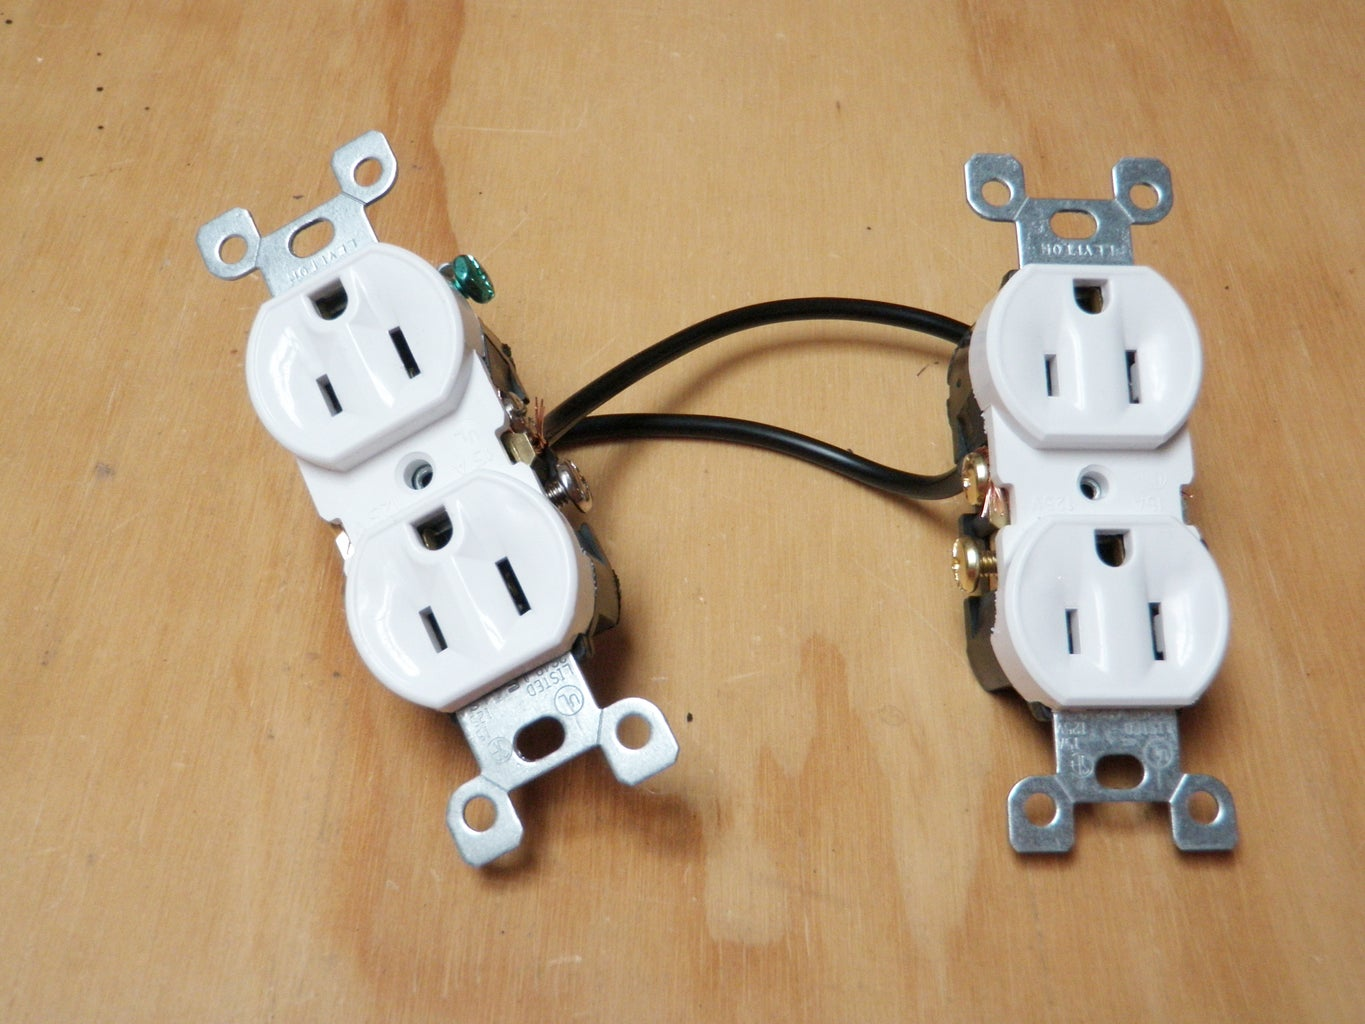 Wire the Sockets